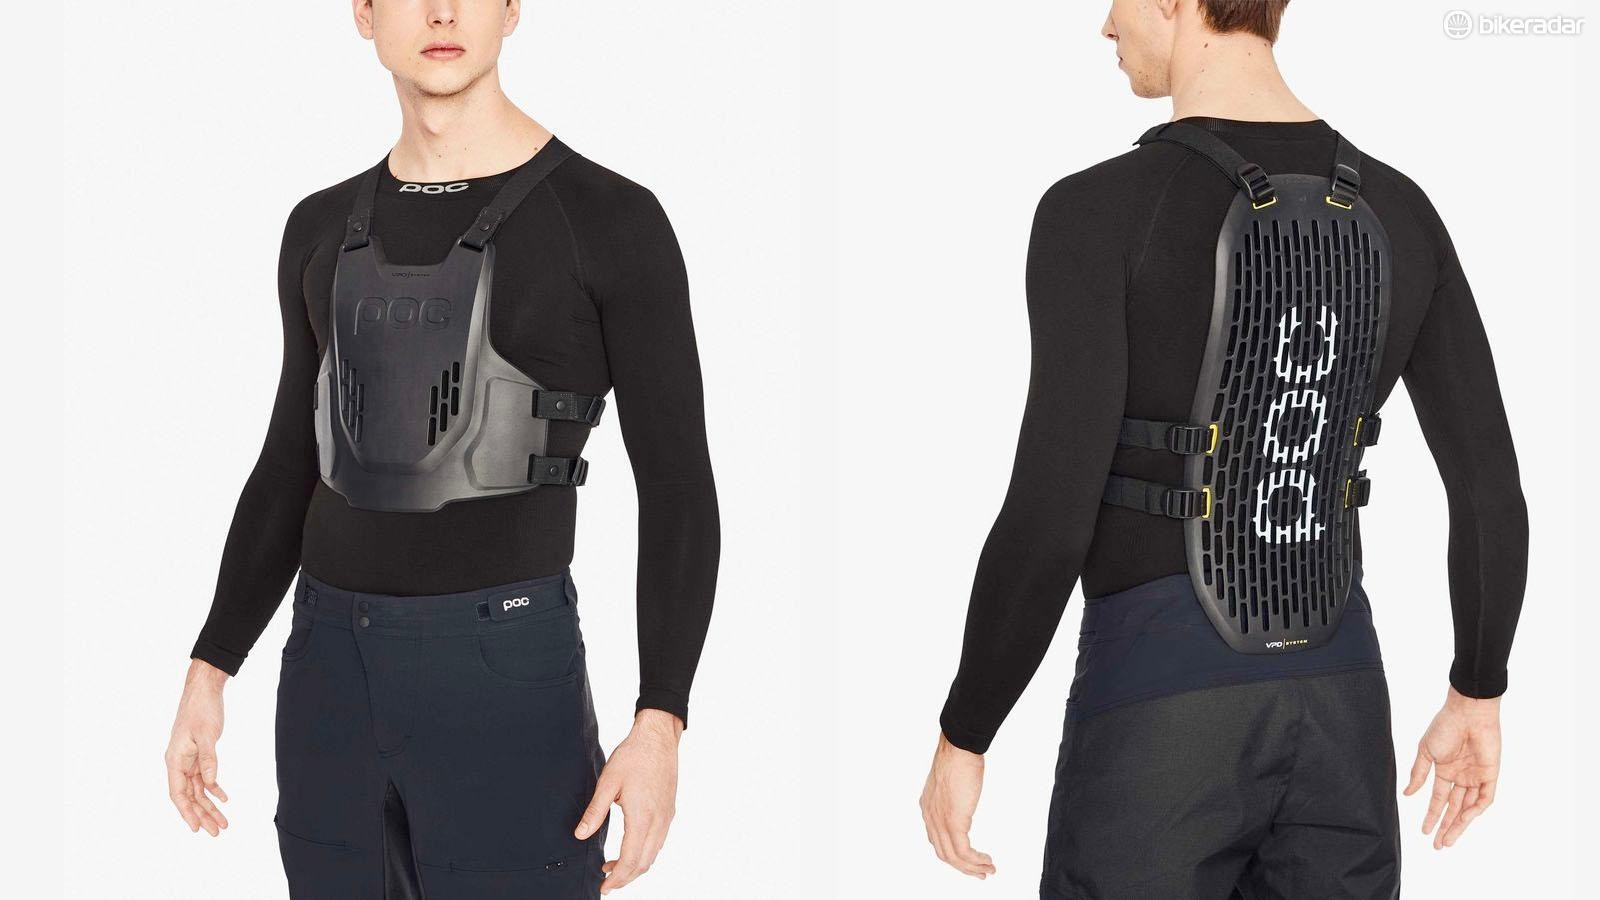 POC says the VPD Torso system uses body heat to mould to your shape